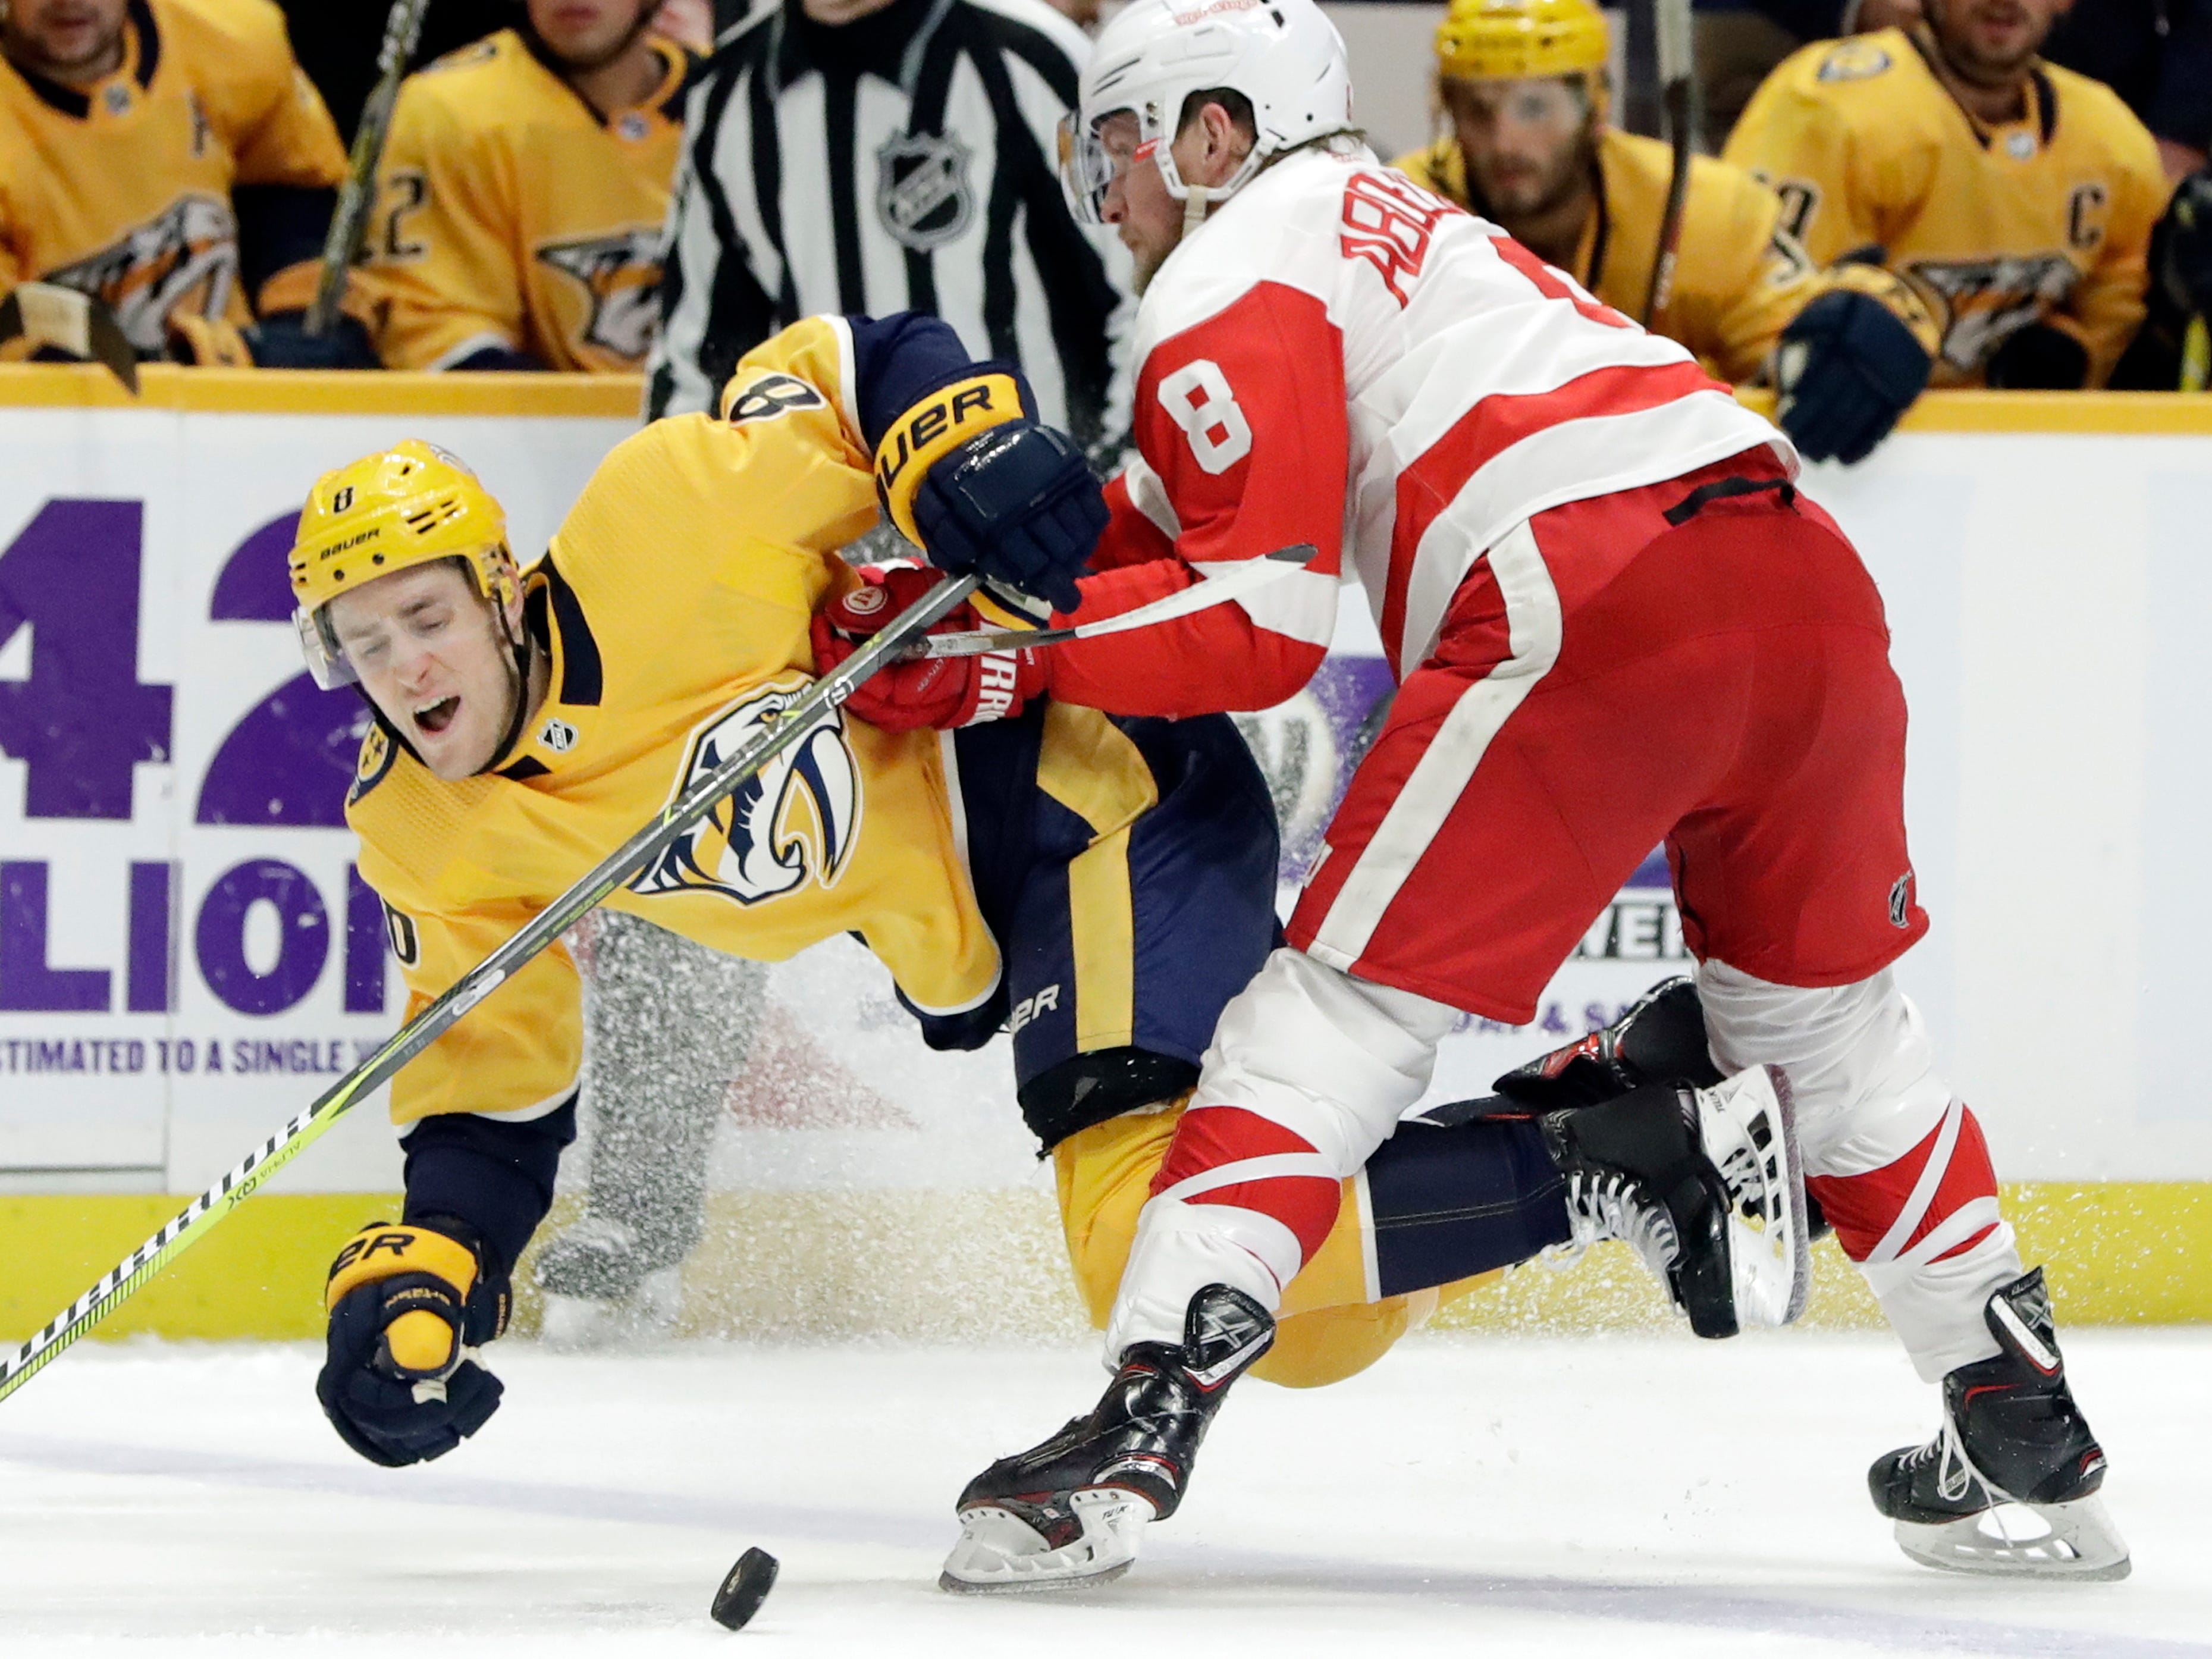 Detroit Red Wings left wing Justin Abdelkader, right, checks Nashville Predators center Kyle Turris off the puck during the second period.